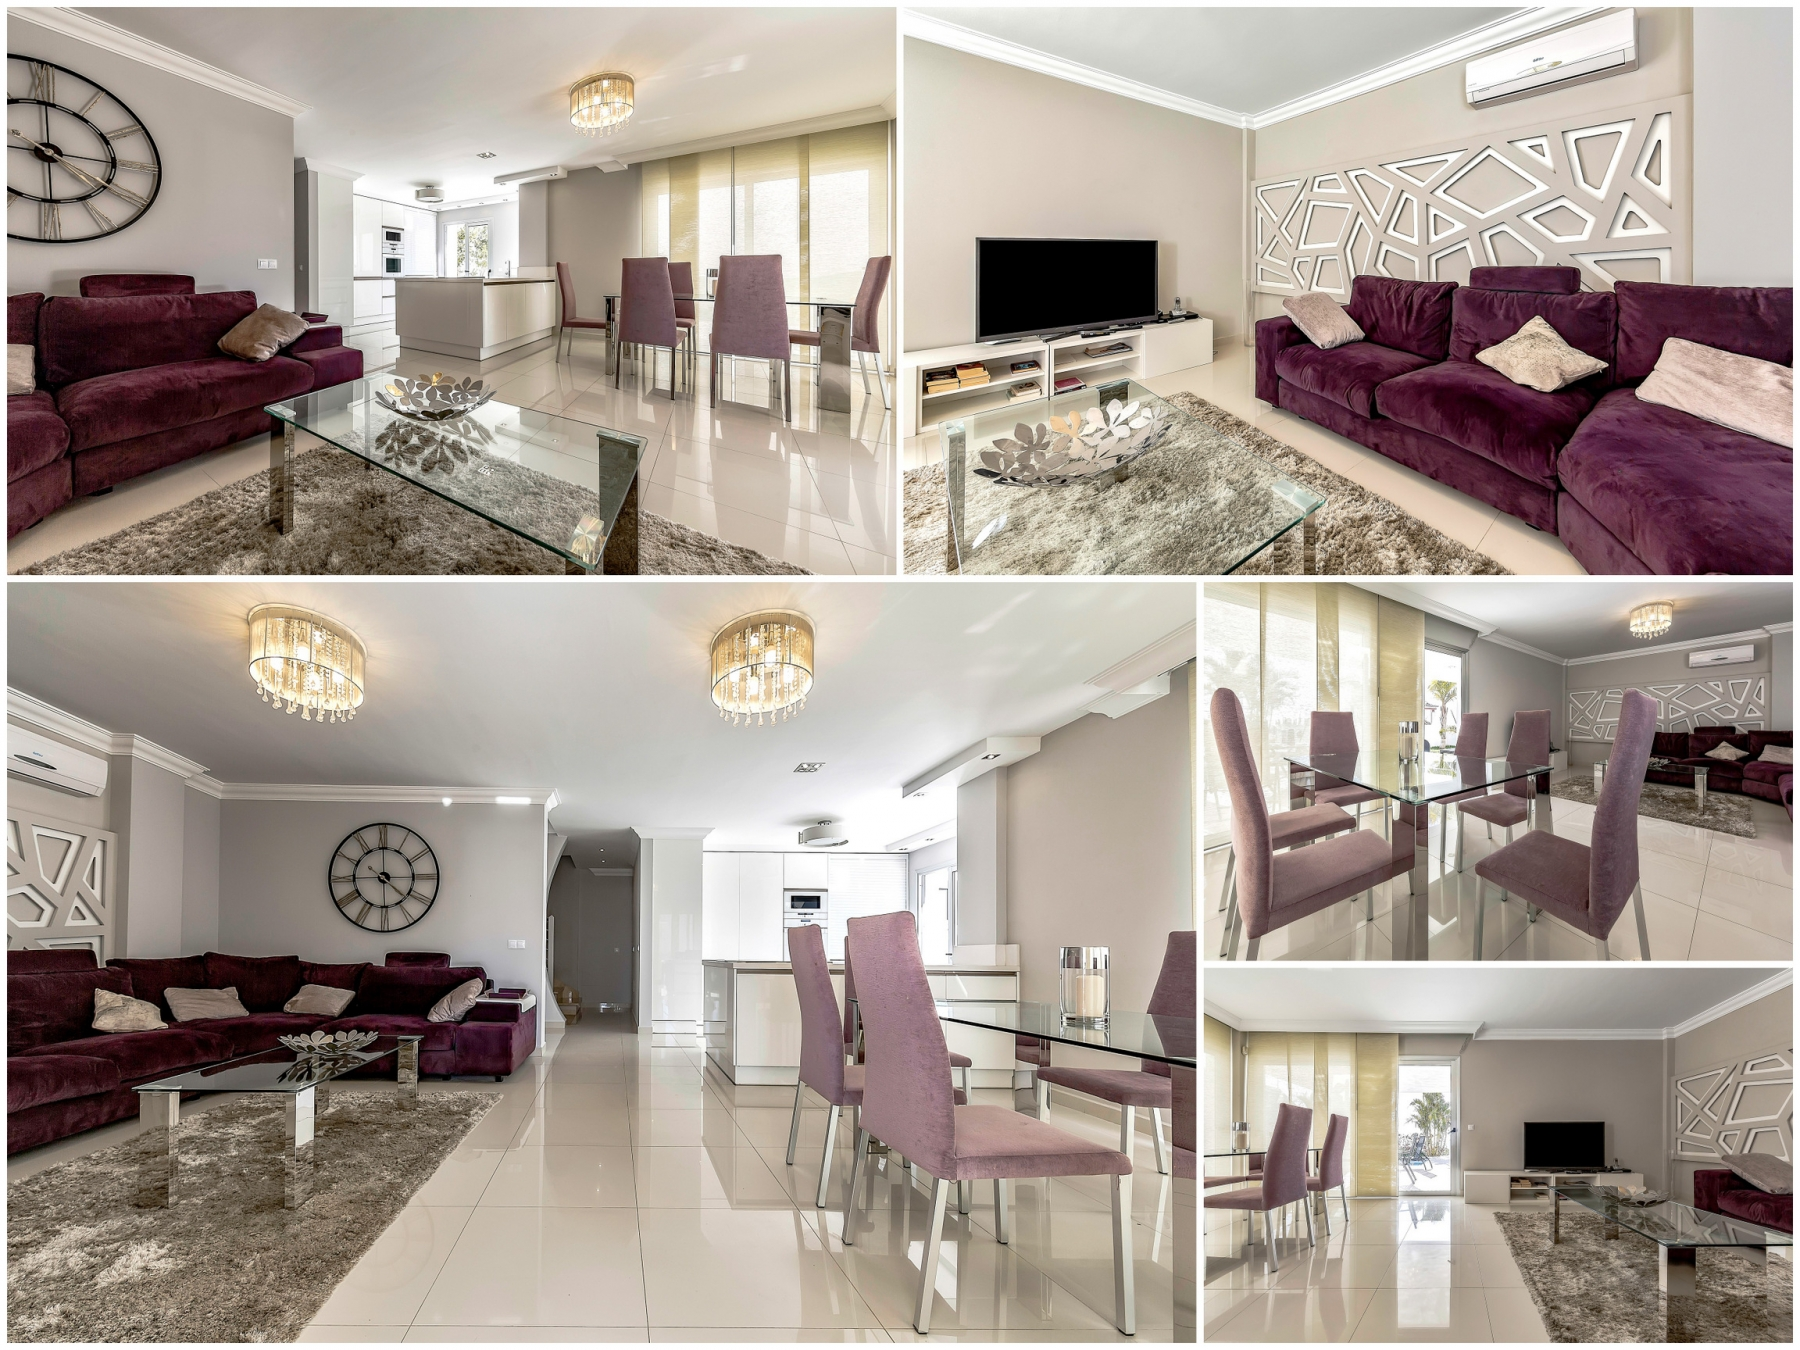 Properties for Sale in Tenerife, Canary Islands, Spain   SylkWayStar Real Estate. Luxury villa in the fashionable area of the south of the island of Tenerife – Madroñal.. Image-22851